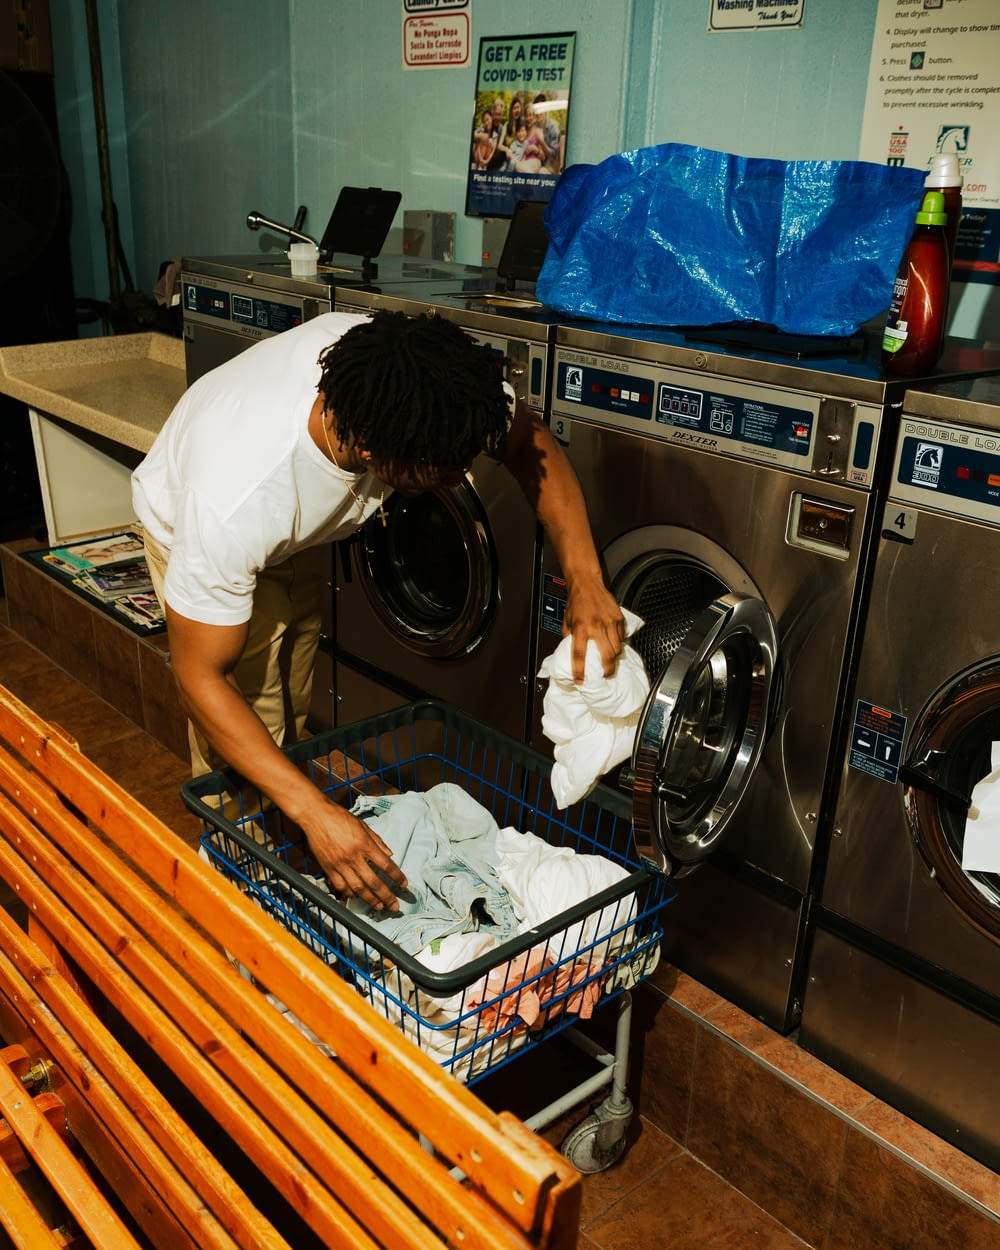 woman in white t-shirt washing dishes